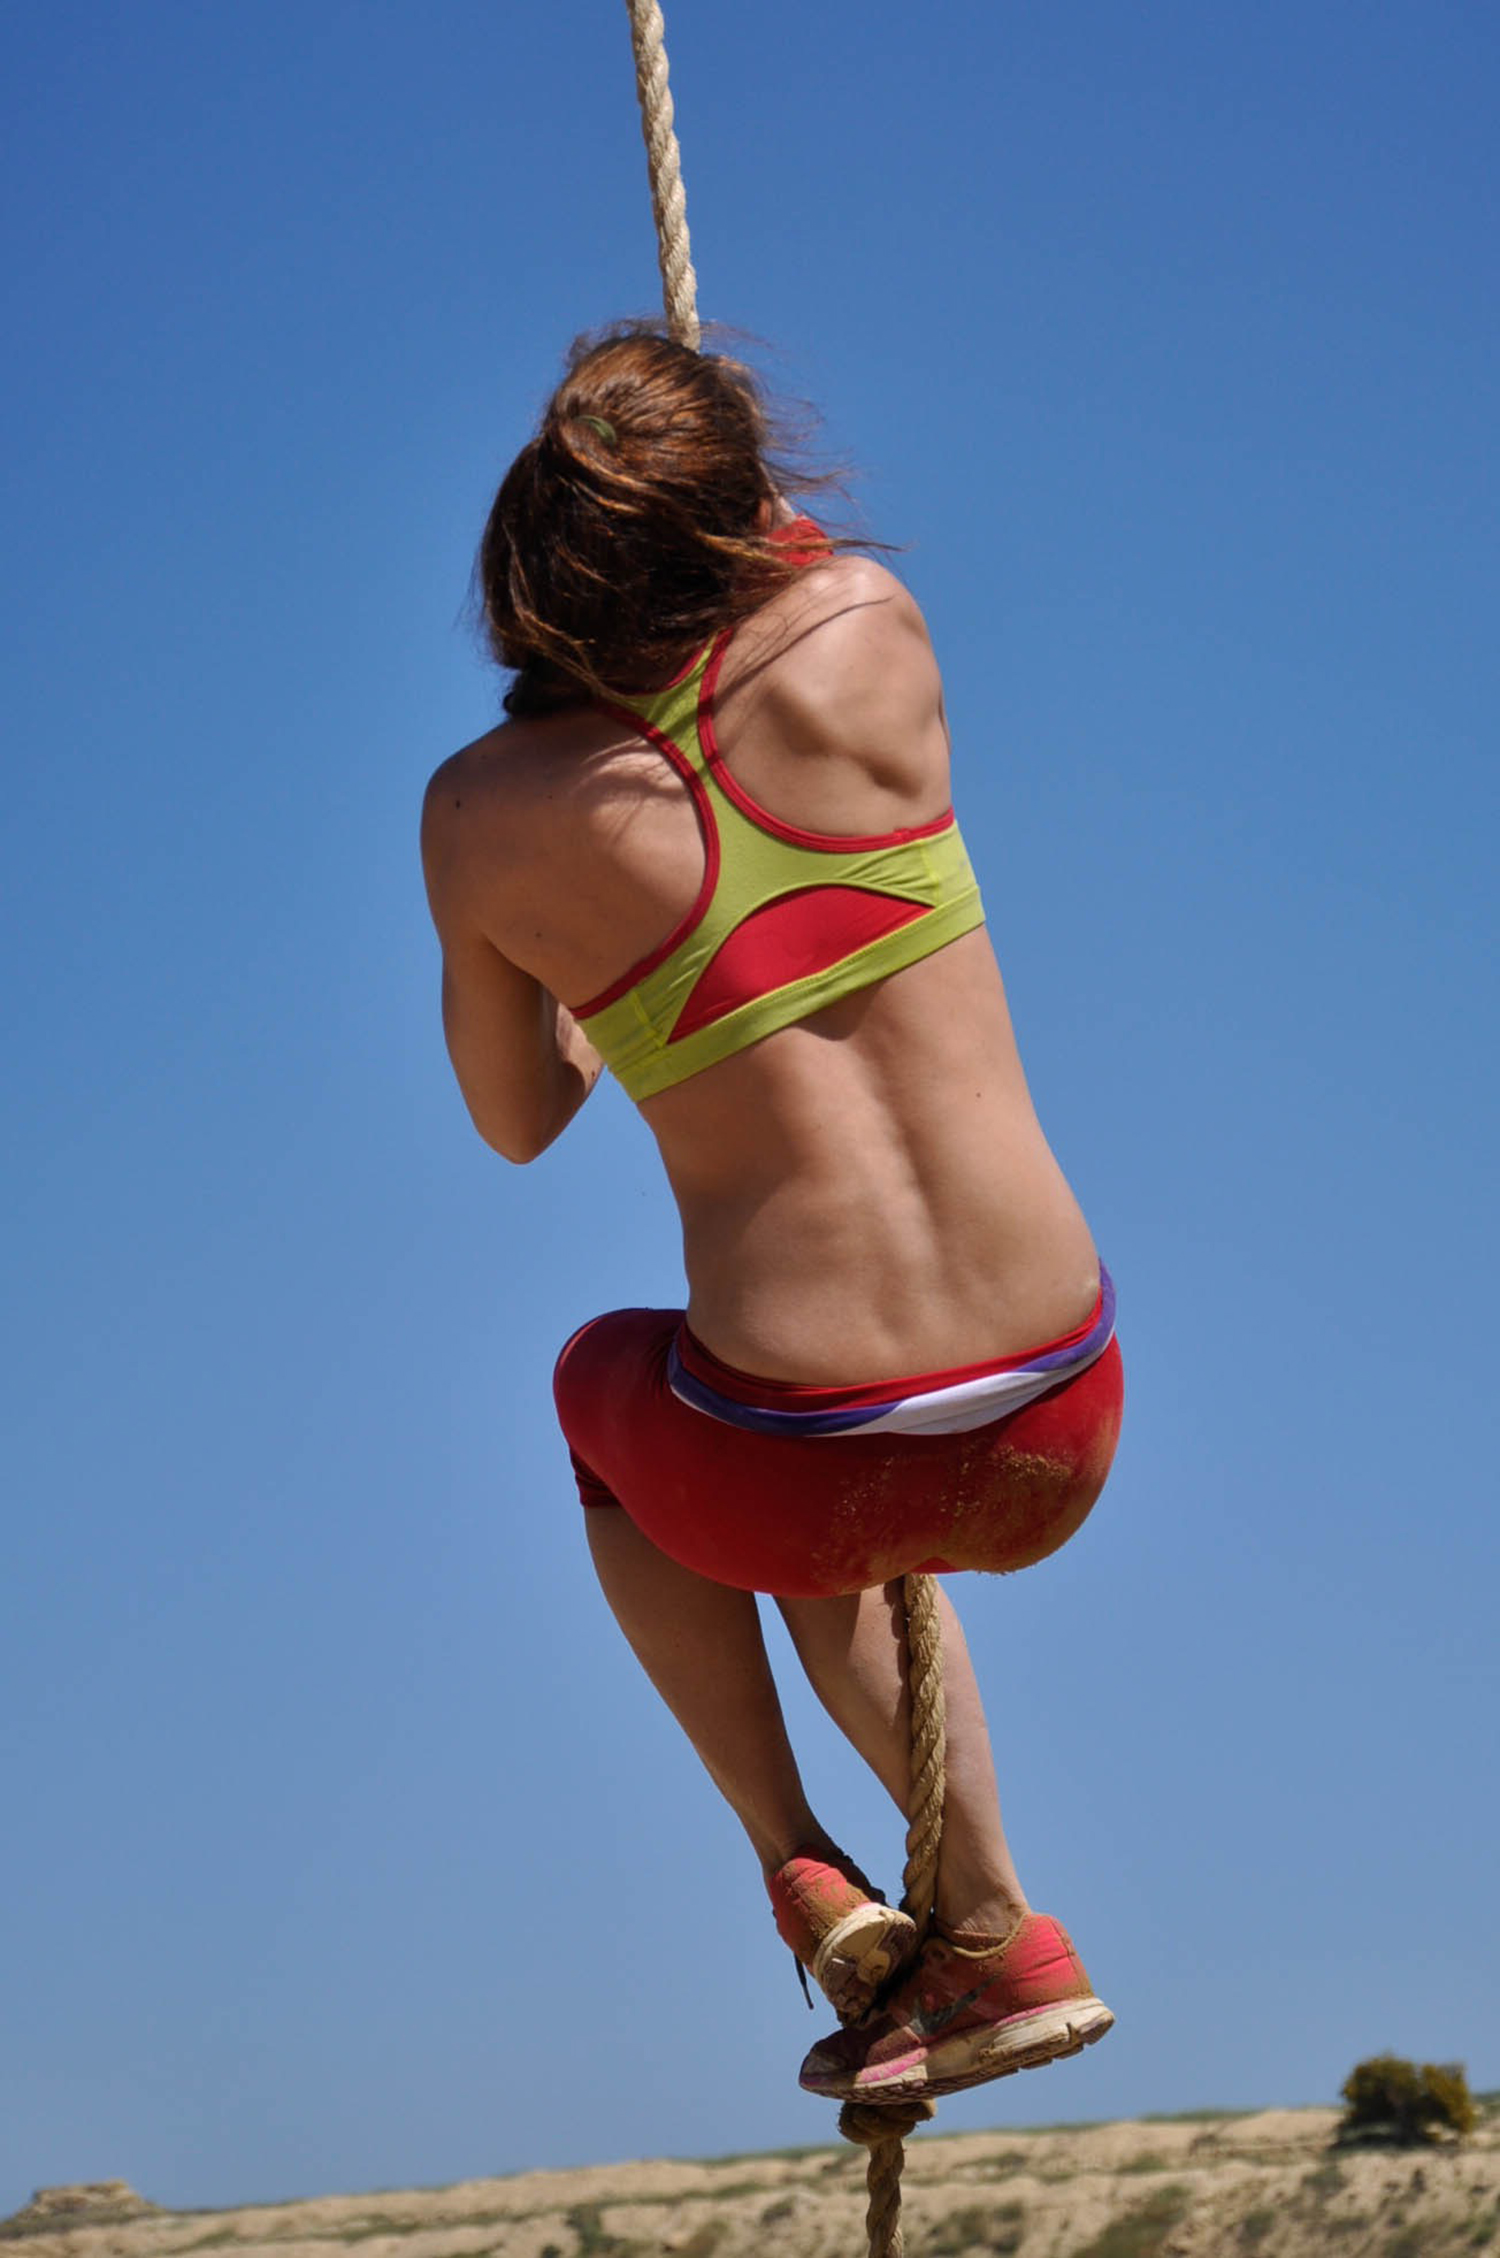 Strong Woman Rope Climbing on A Sunny Day. Woman Doing Rope Exercise Outdoors